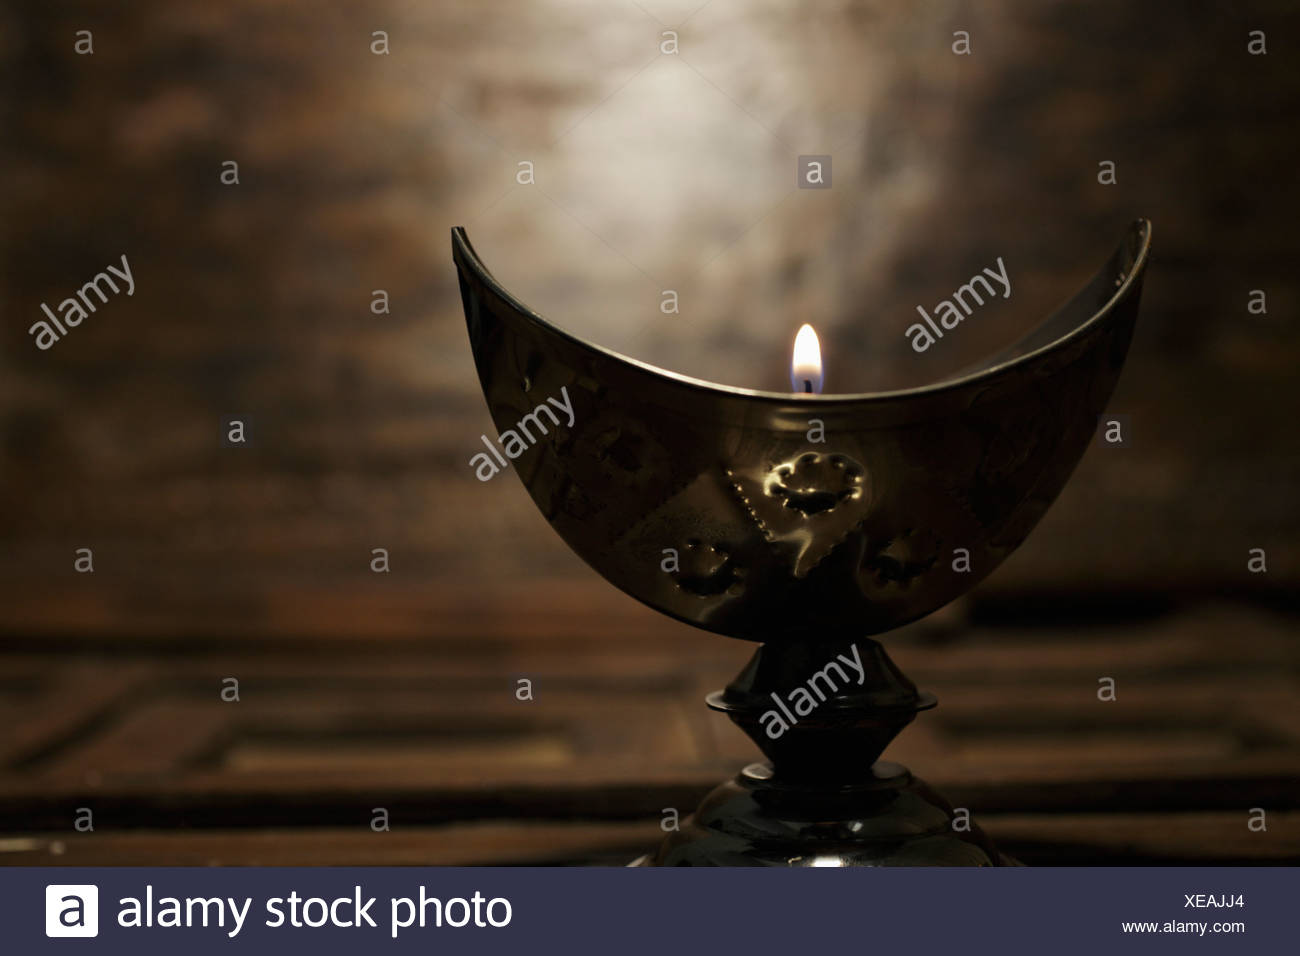 Silver cresent candle holder with lit candle - Stock Image